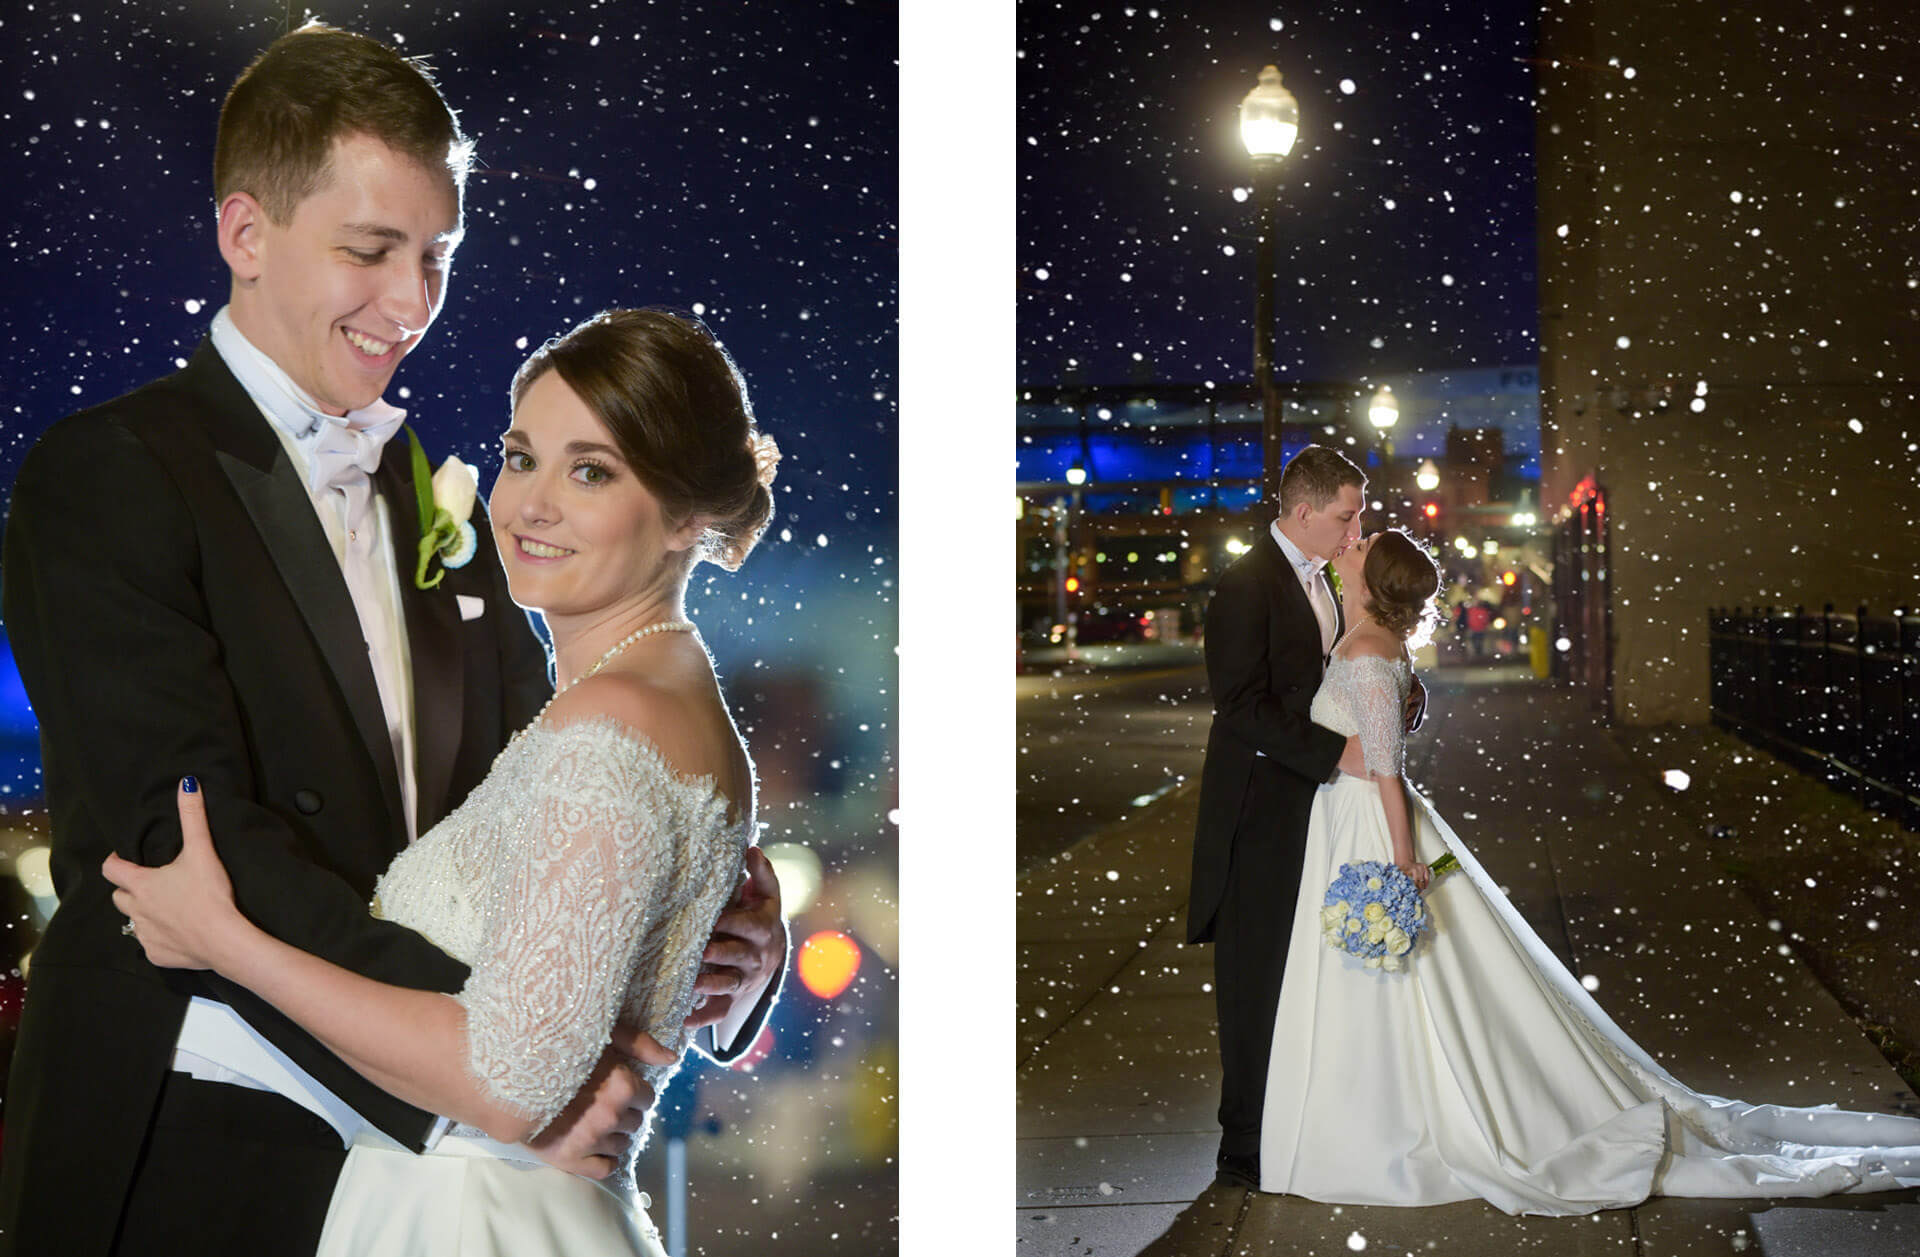 A winter wedding downtown Detroit, Michigan makes for a cool, winter wedding portrait.